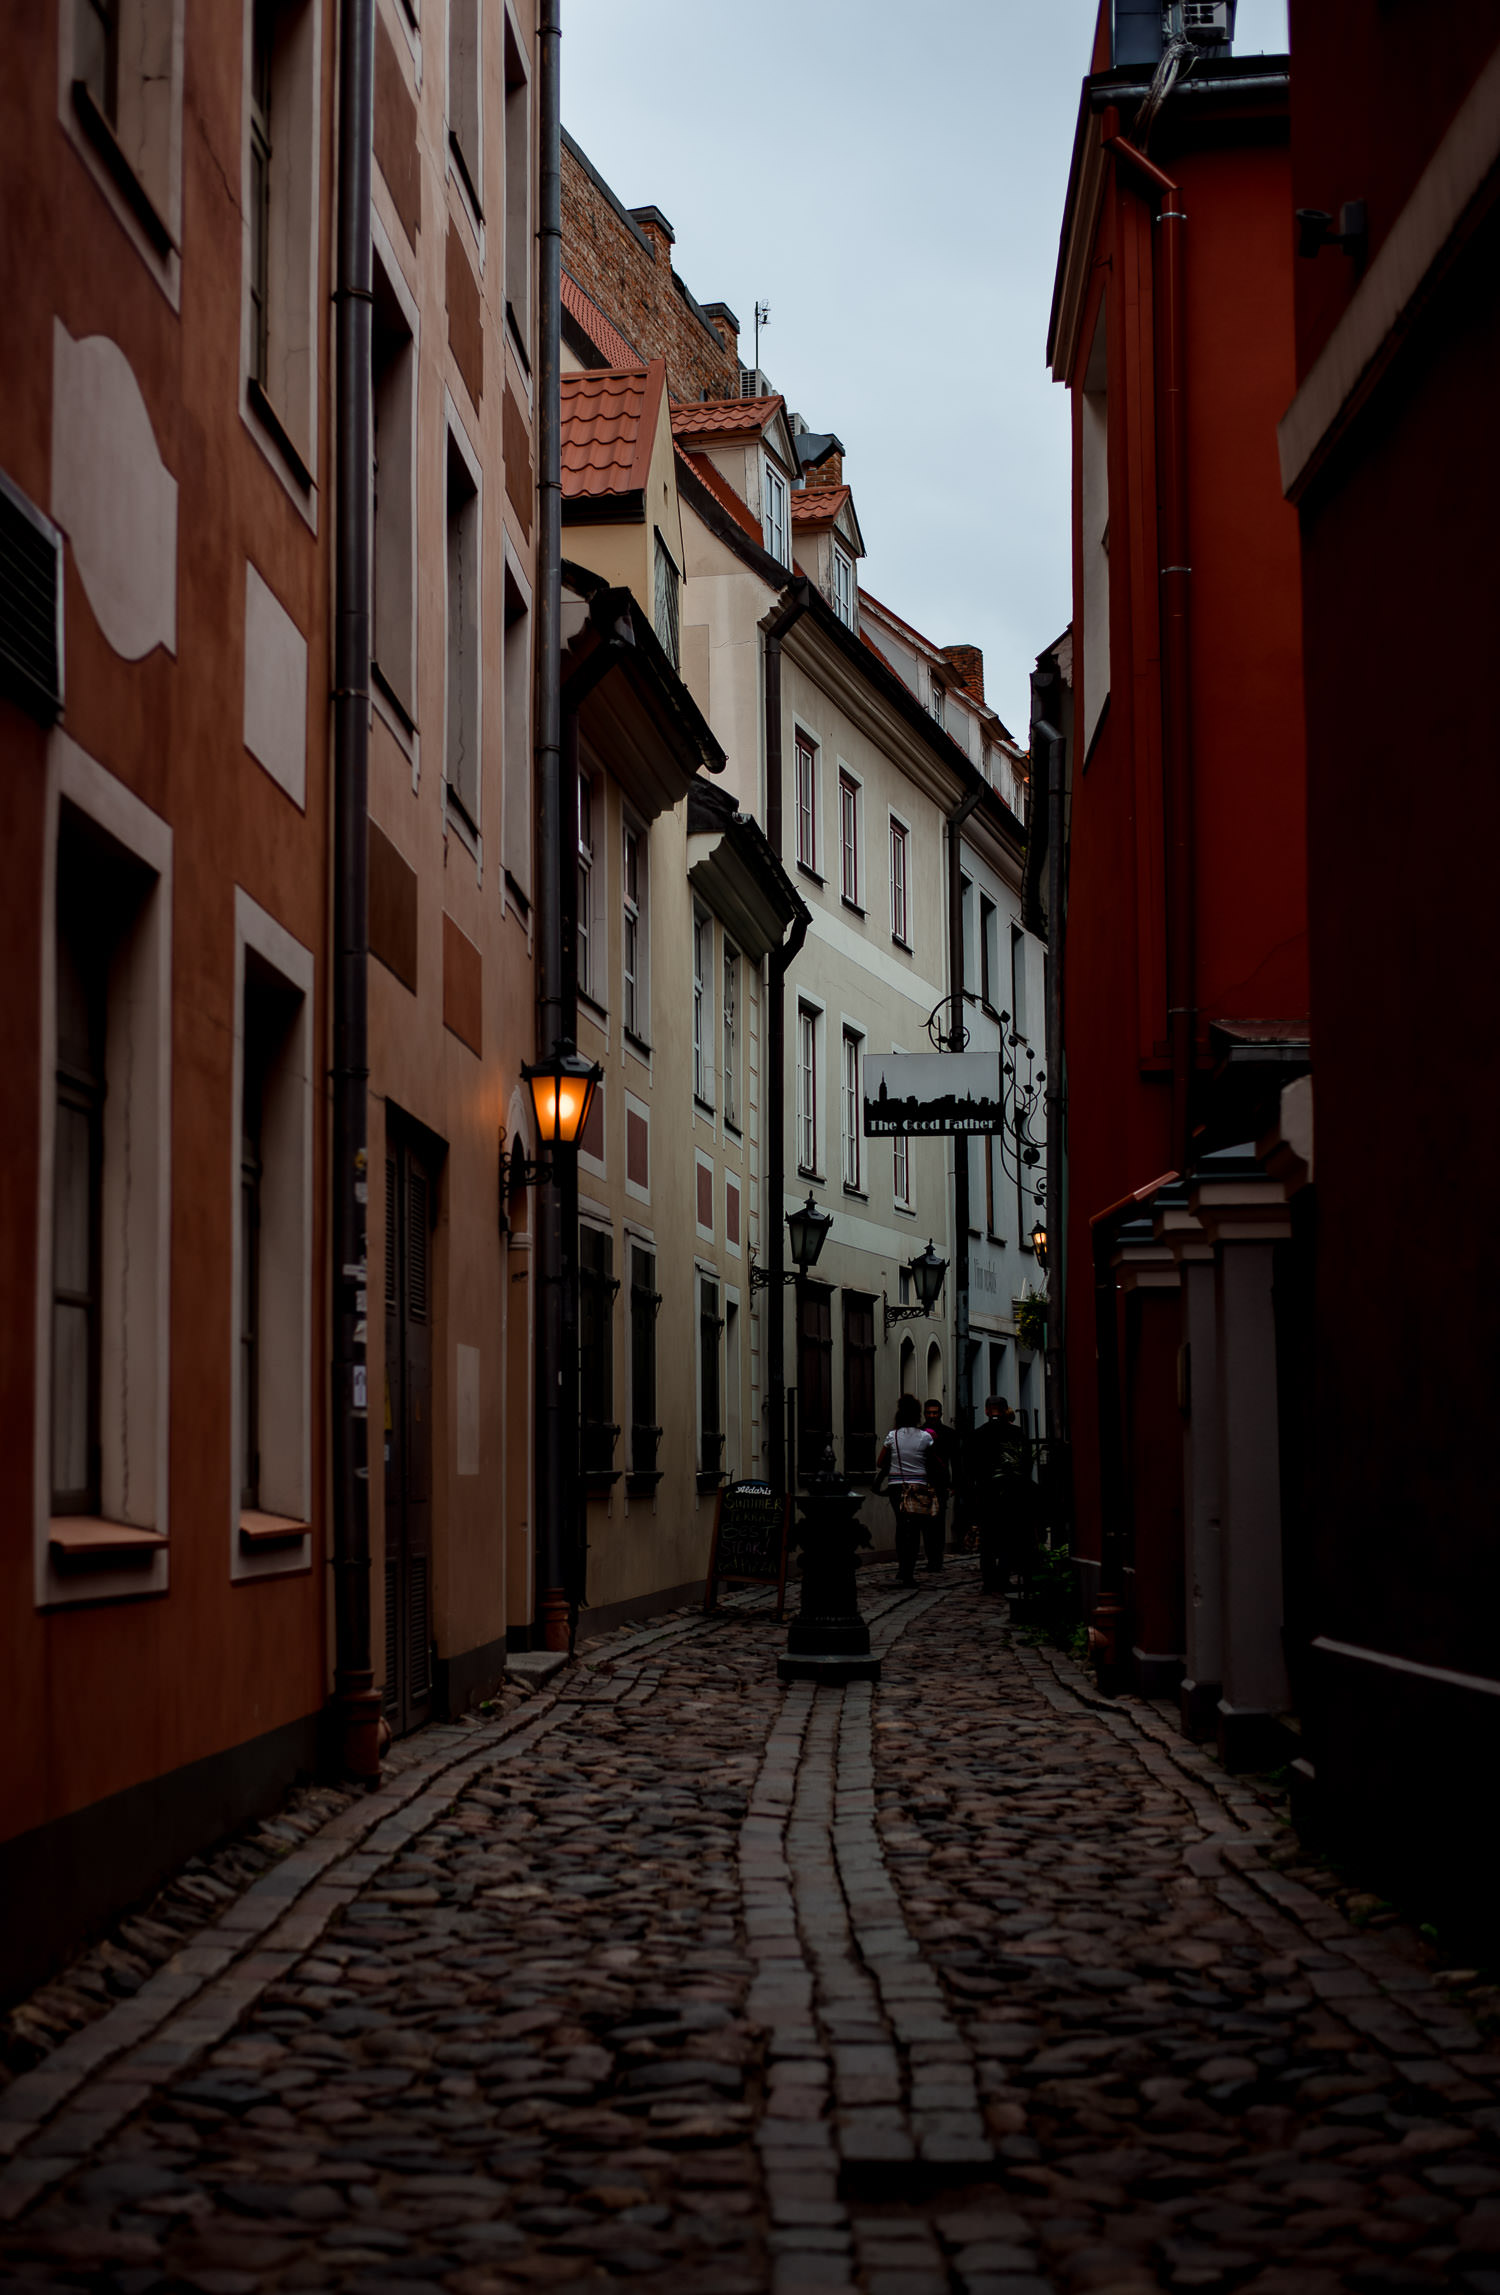 Riga alleyway photograph